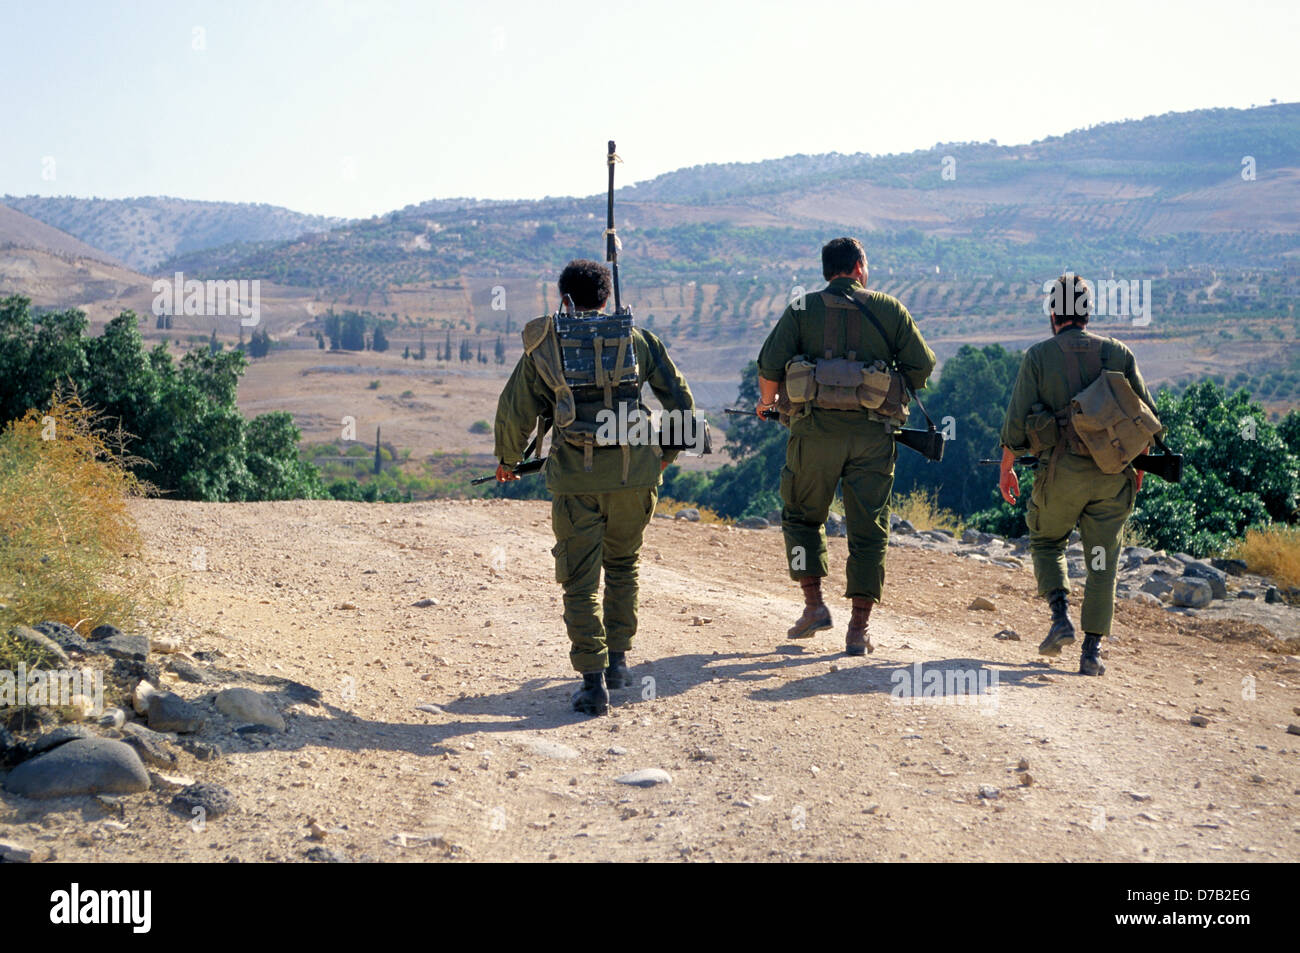 military patrol in the Golan Heights - Stock Image